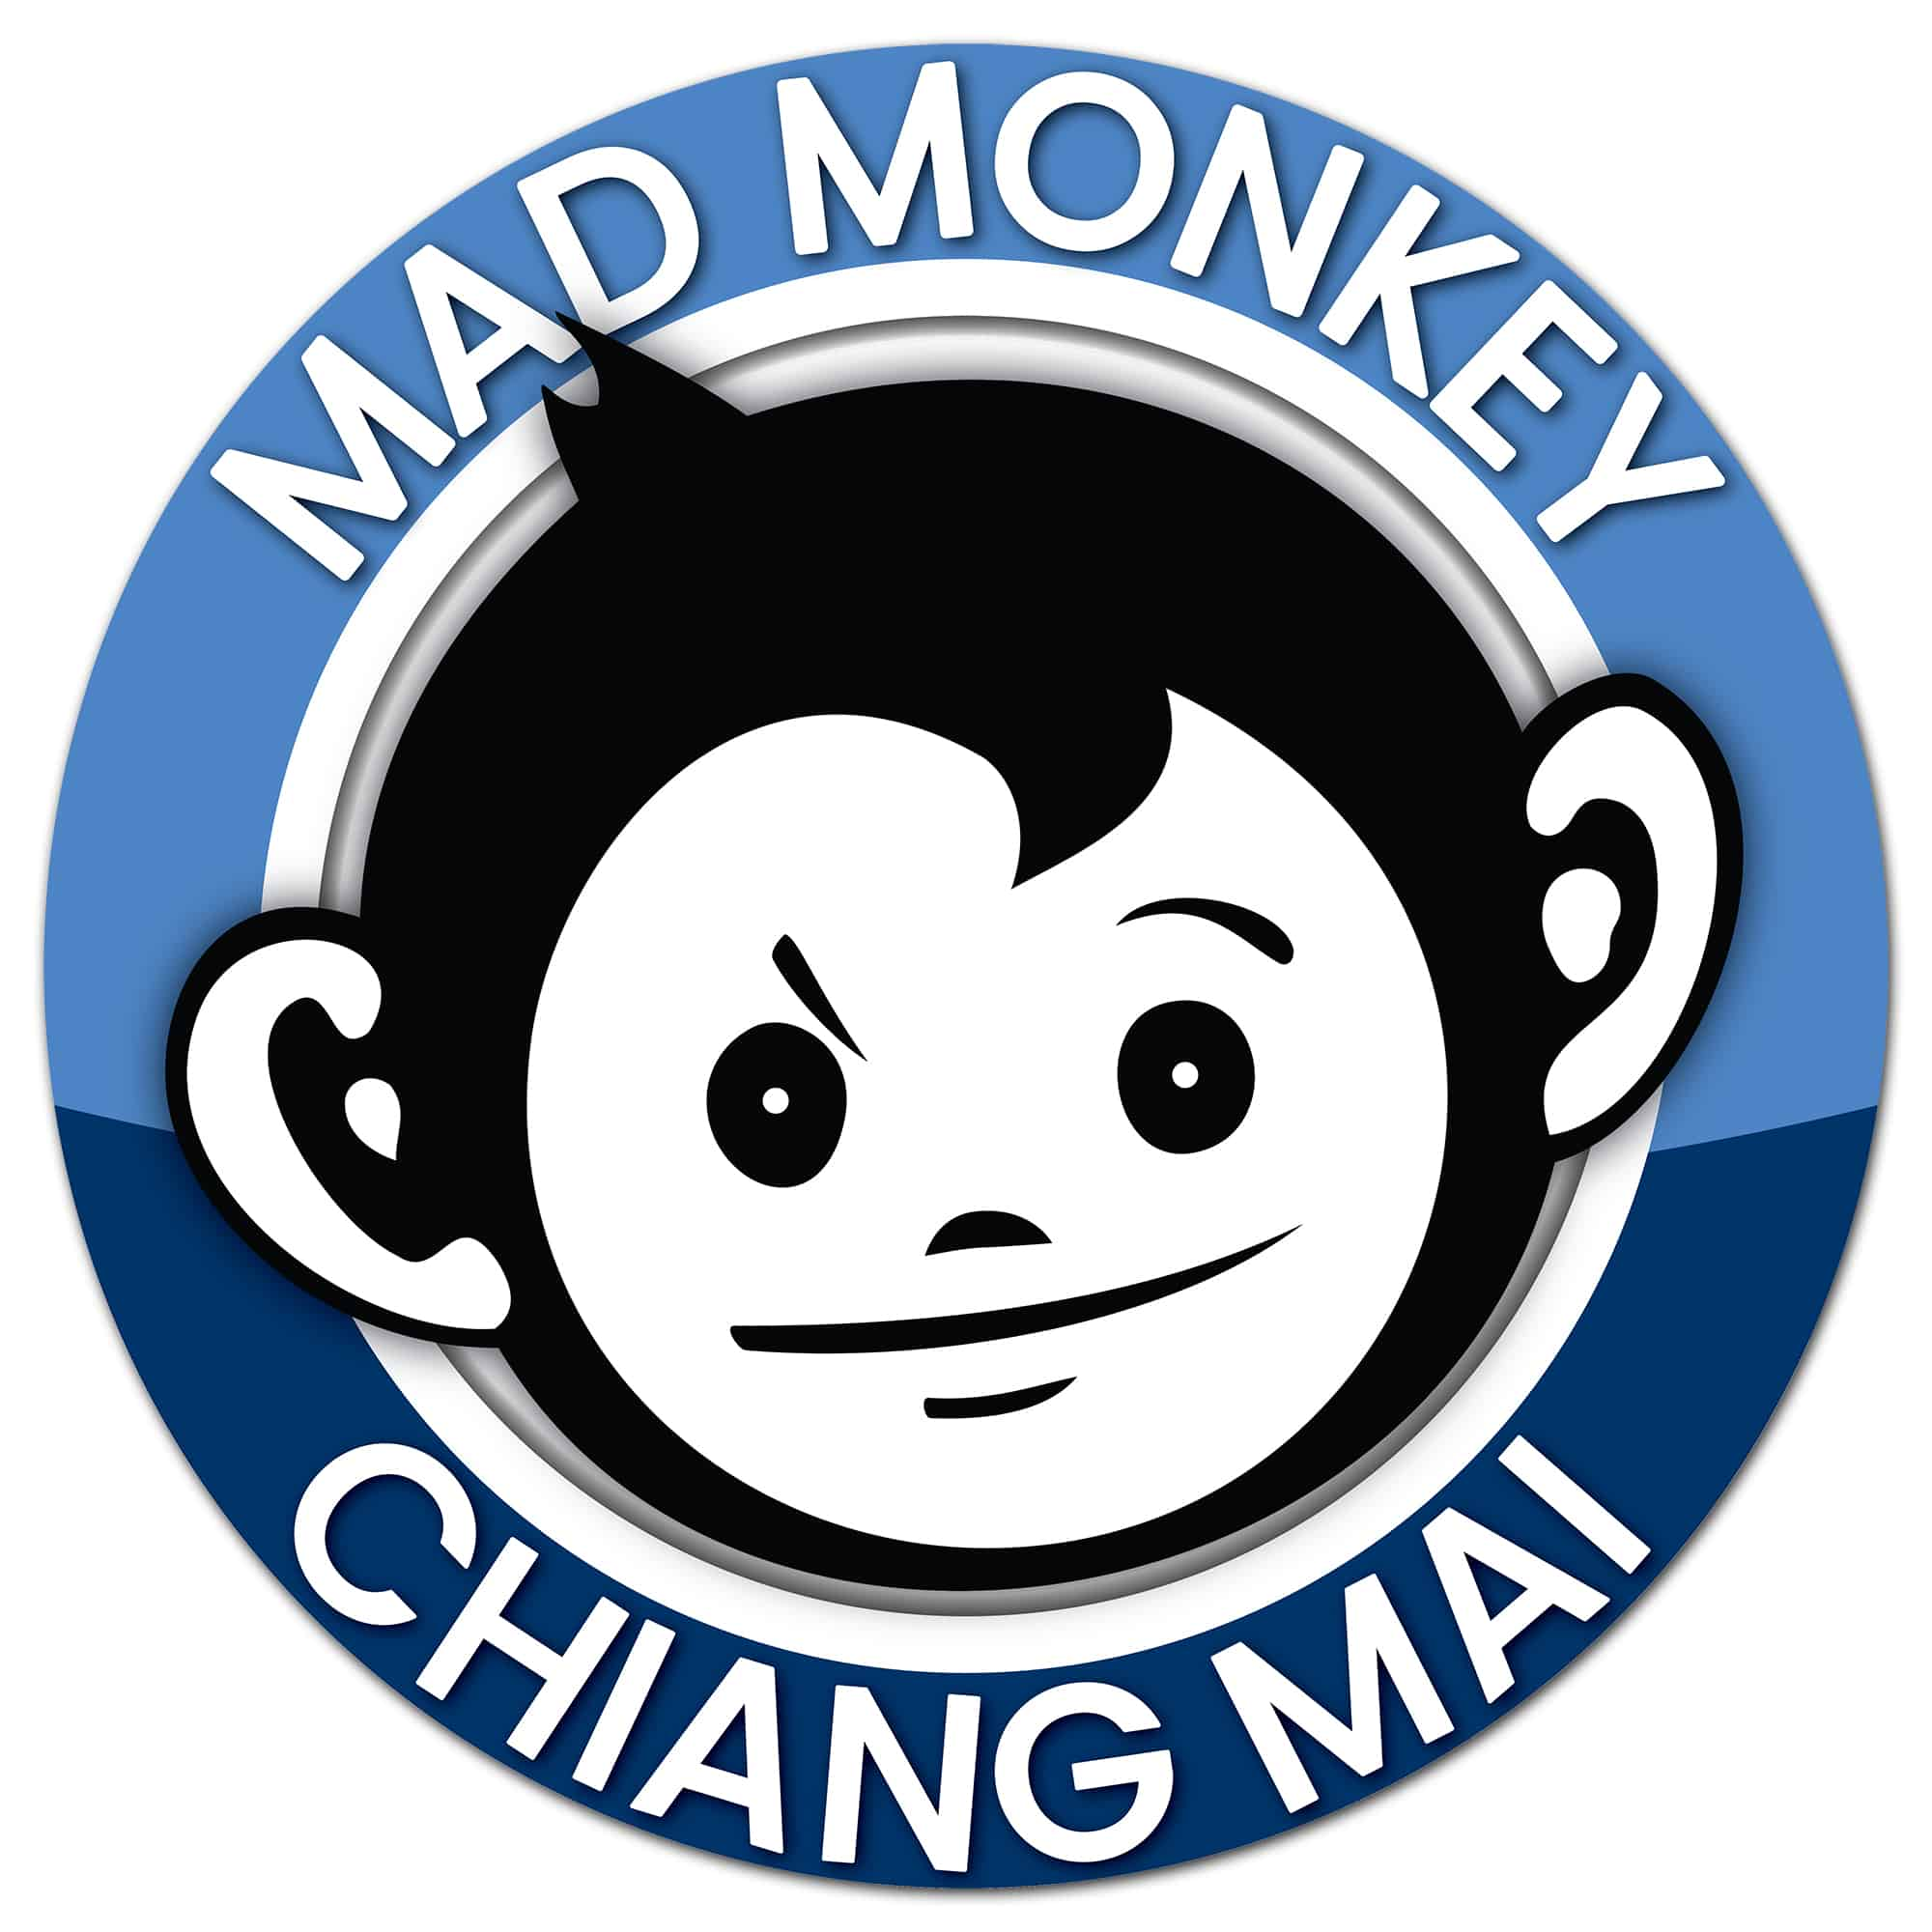 Mad Monkey Hostels Chiang Mai Facebook - Mad Monkey Hostels